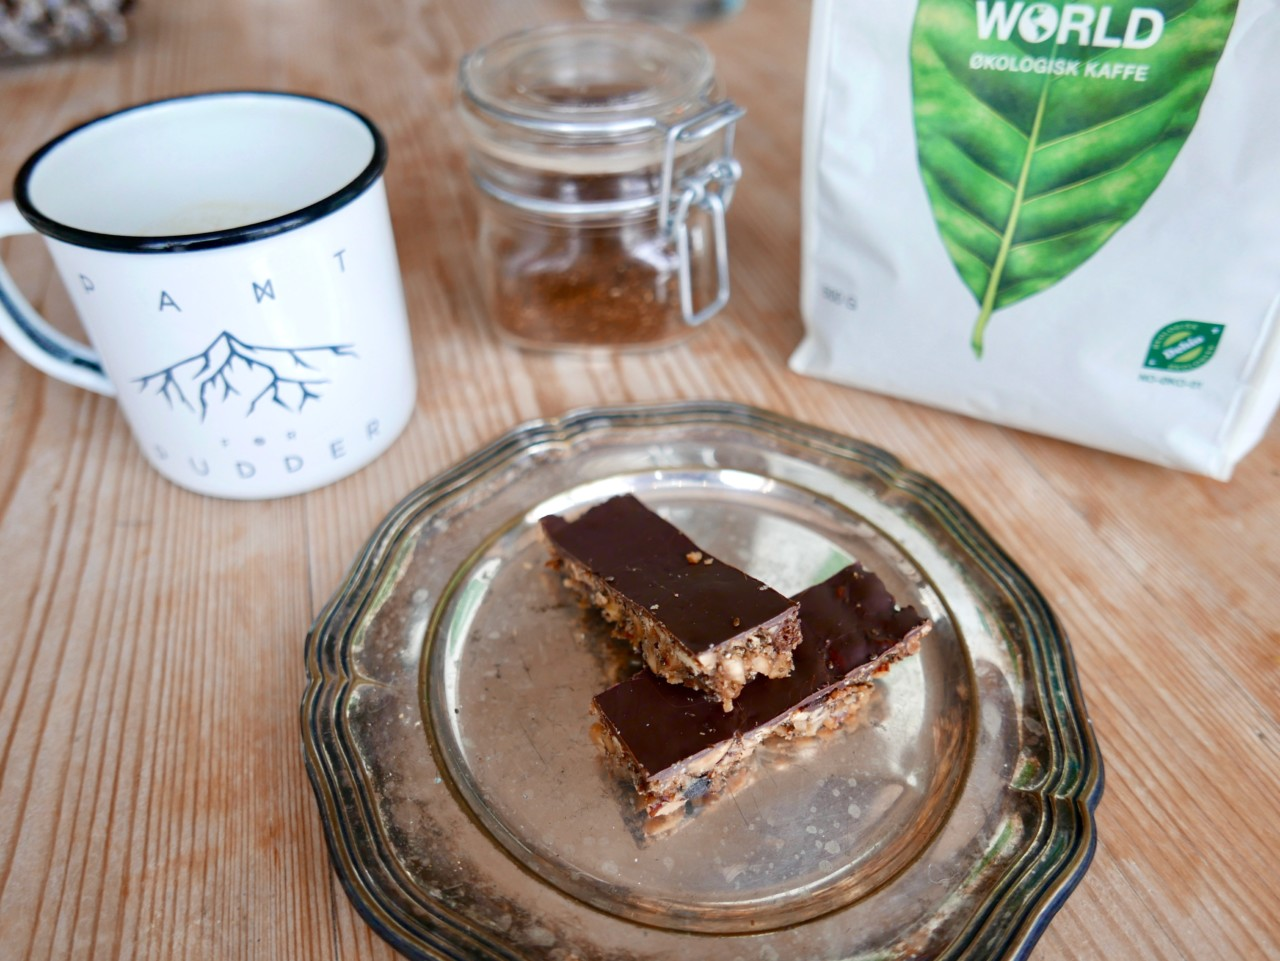 green-world-okologisk-kaffe-pant-for-pudder-glutenfri-energibar